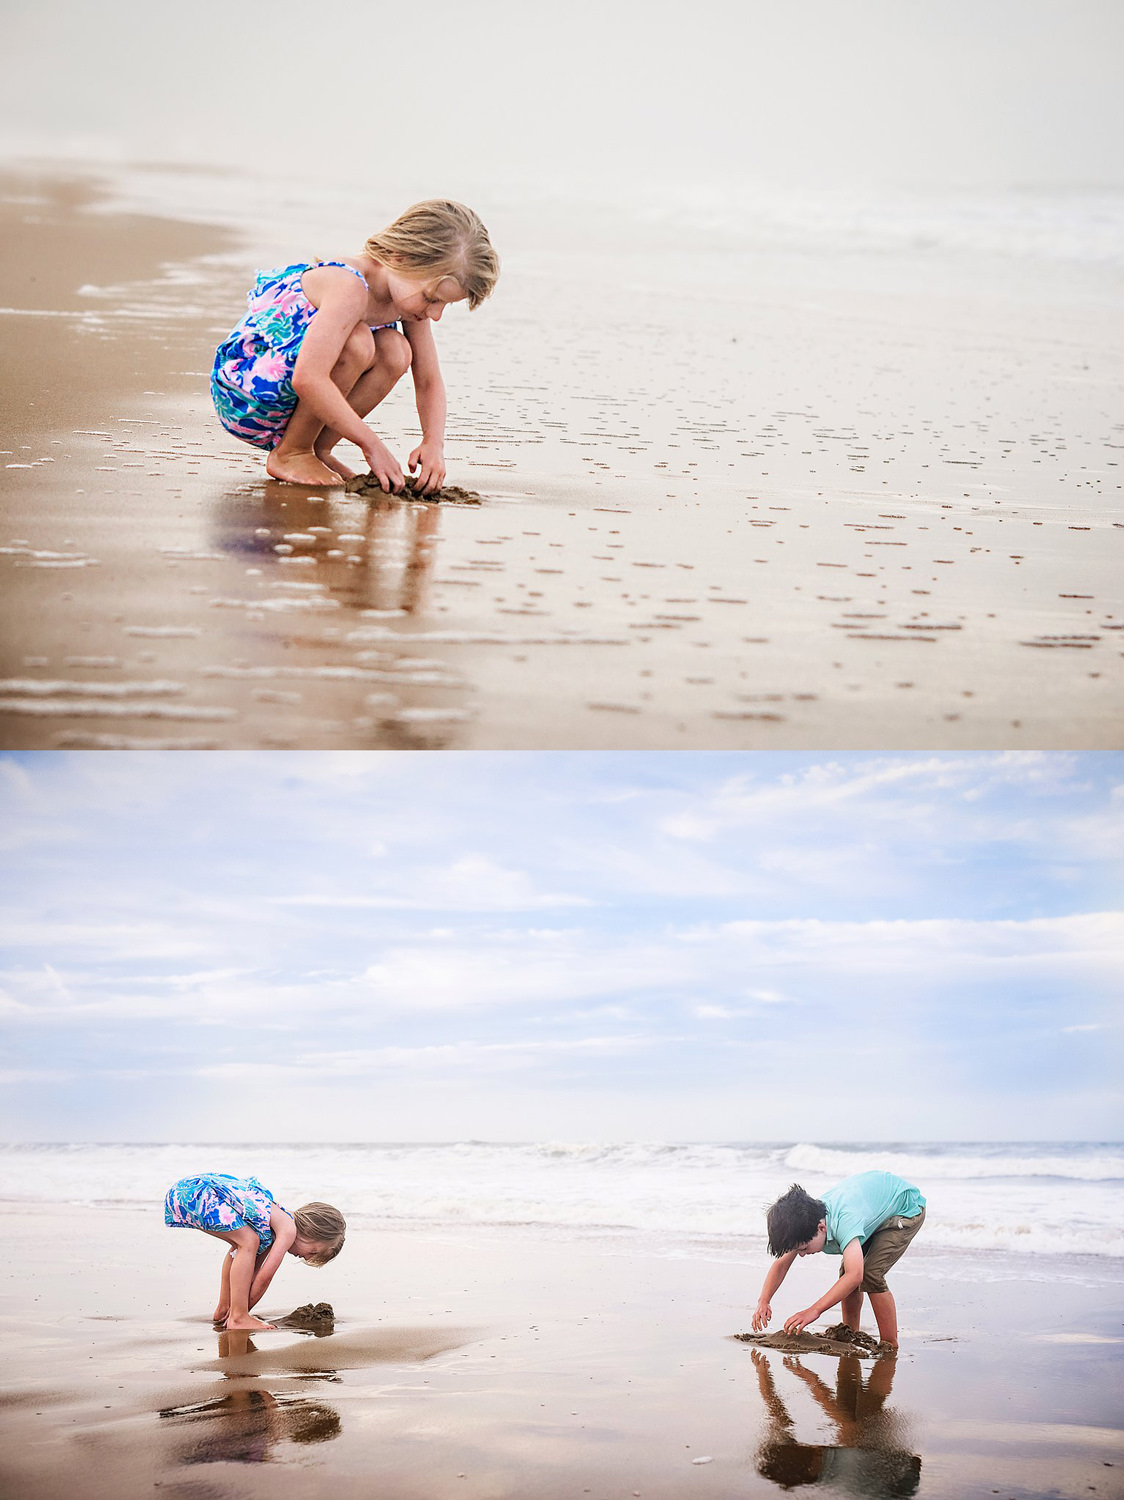 brother-and-sister-play-in-the-sand-virginia-beach-photographer-melissa-bliss-photography.jpg